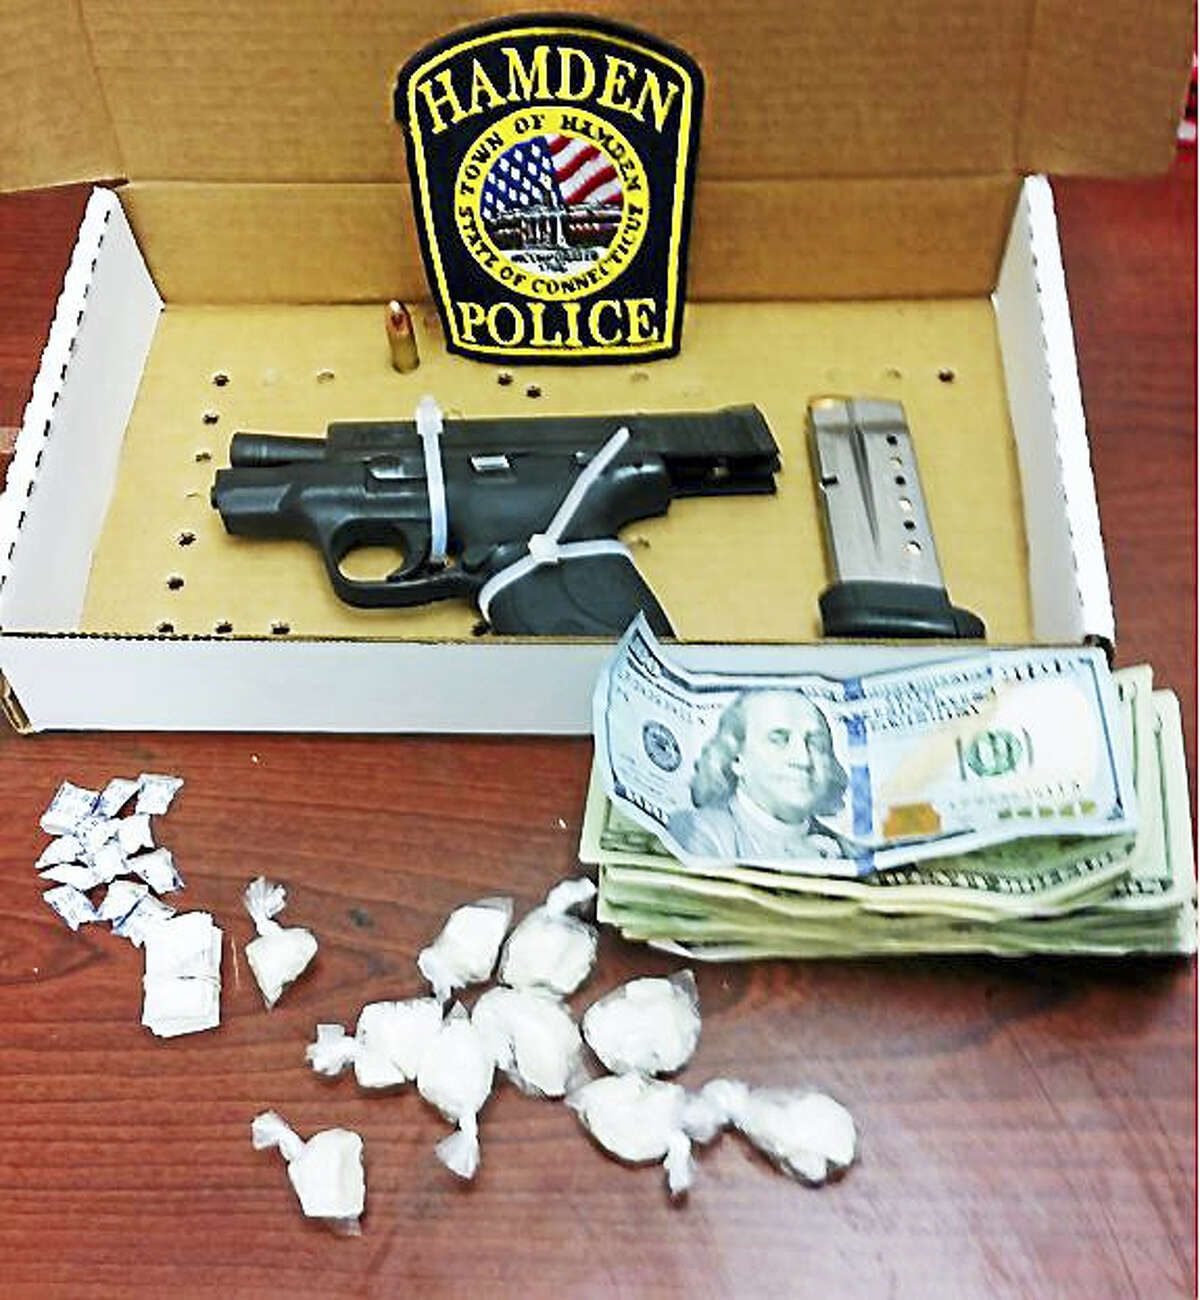 Police say this stolen weapon, along with 23 bags of crack cocaine and 10 folds of heroin, were recovered after they arrested Johnny Stroud III on New Year's Eve in Hamden.